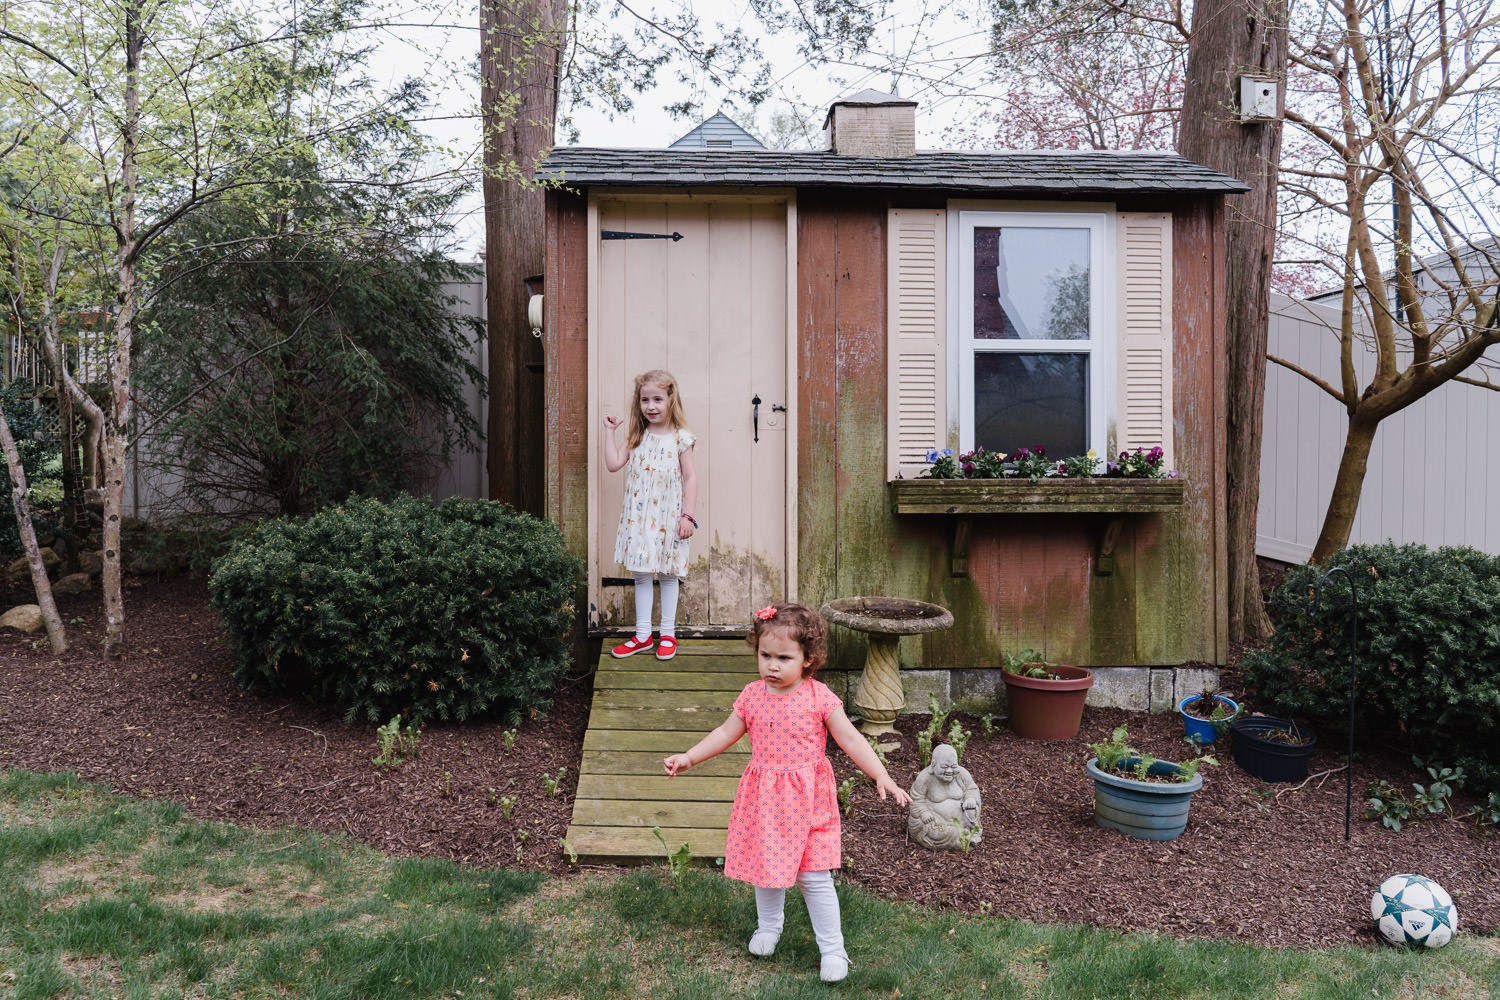 Two girls stand in front of a shed in a backyard.